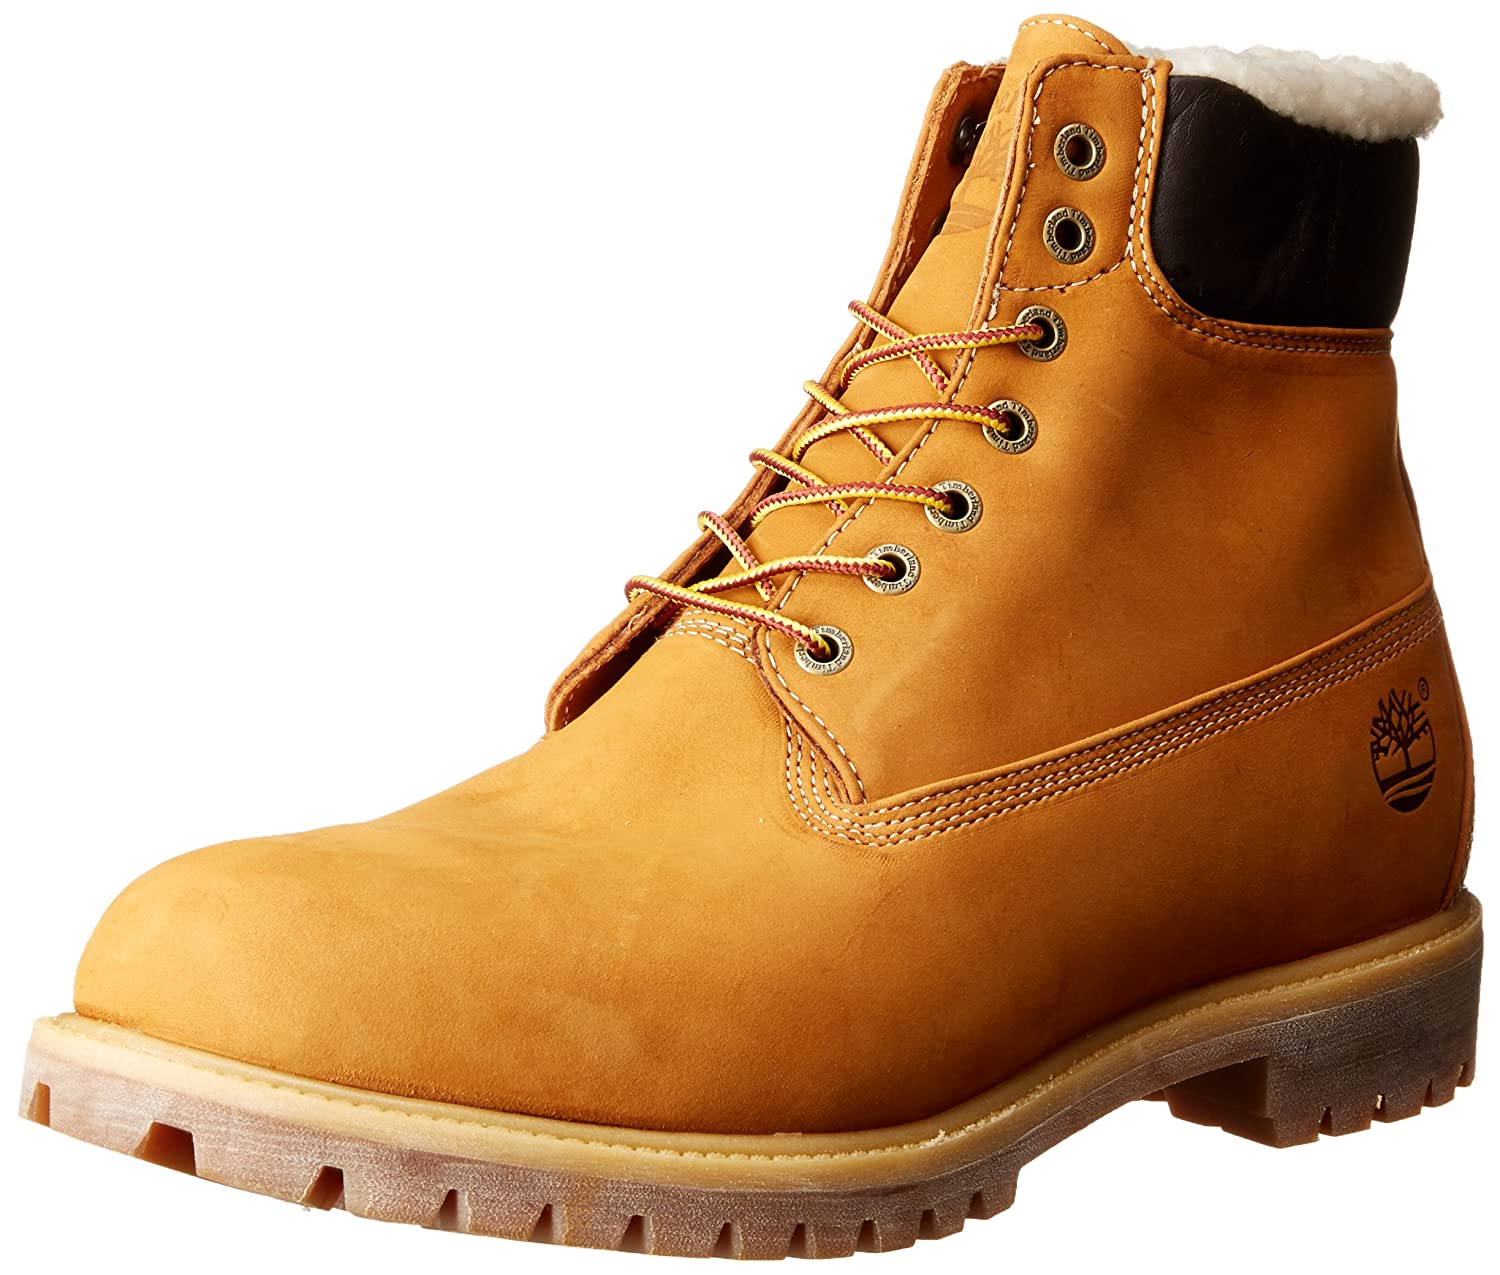 Timberland Heritage 6 Warm Lined Boot, Wheat Nubuck Warm